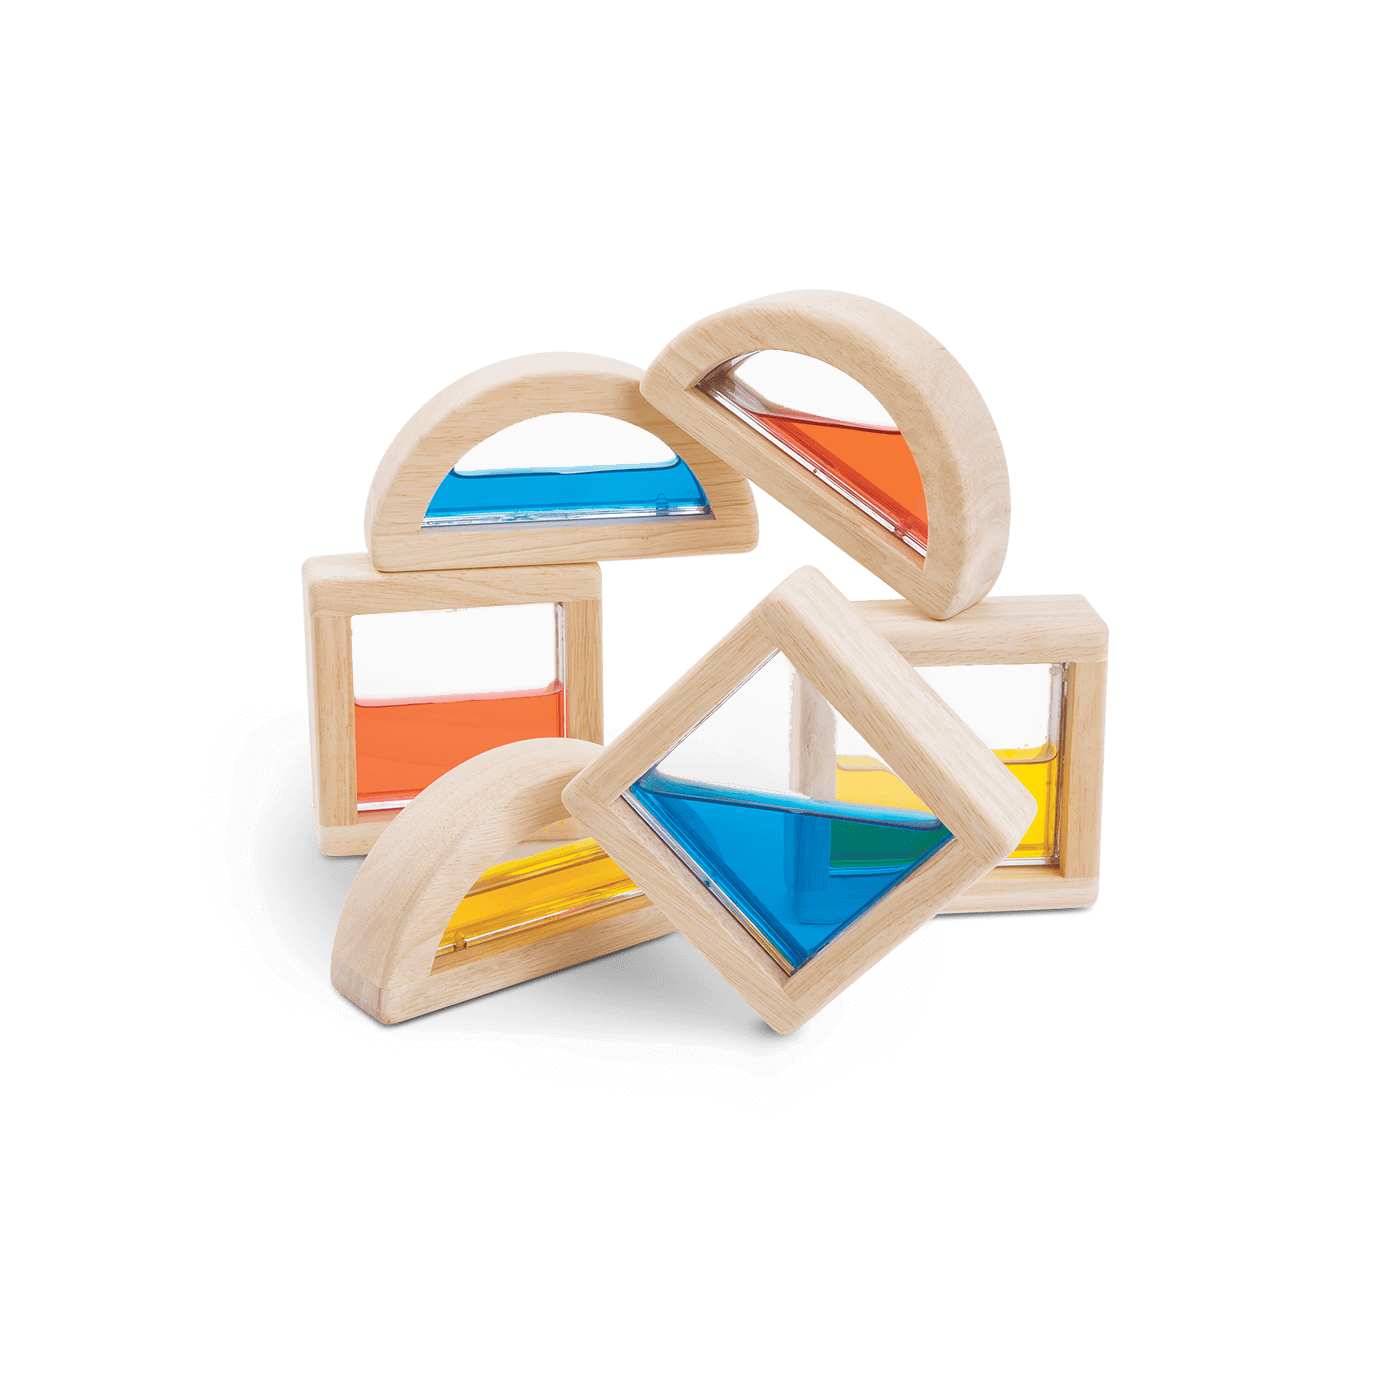 5523_PlanToys_WATER_BLOCKS_Blocks_and_Construction_Mathematical_Creative_Fine_Motor_Visual_3yrs_Wooden_toys_Education_toys_Safety_Toys_Non-toxic_0.png